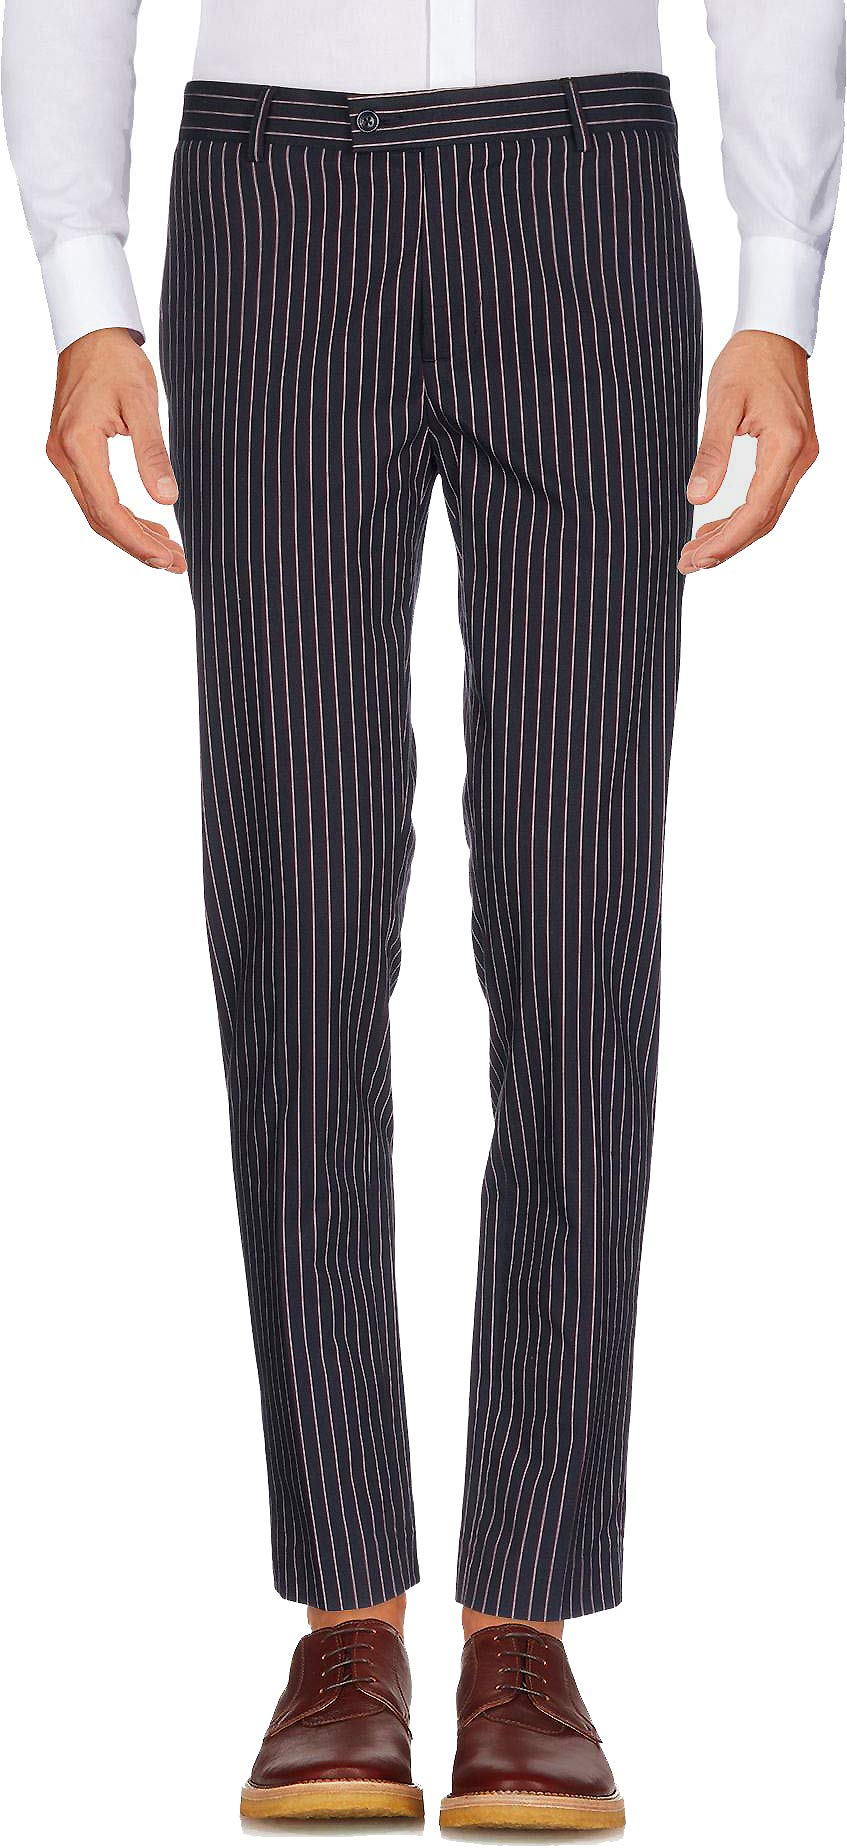 auguswu Men's Flat Front Slim Fit Wool Chambray Pinstripe Suit Separate Pant 32W¡Á32L Black by auguswu